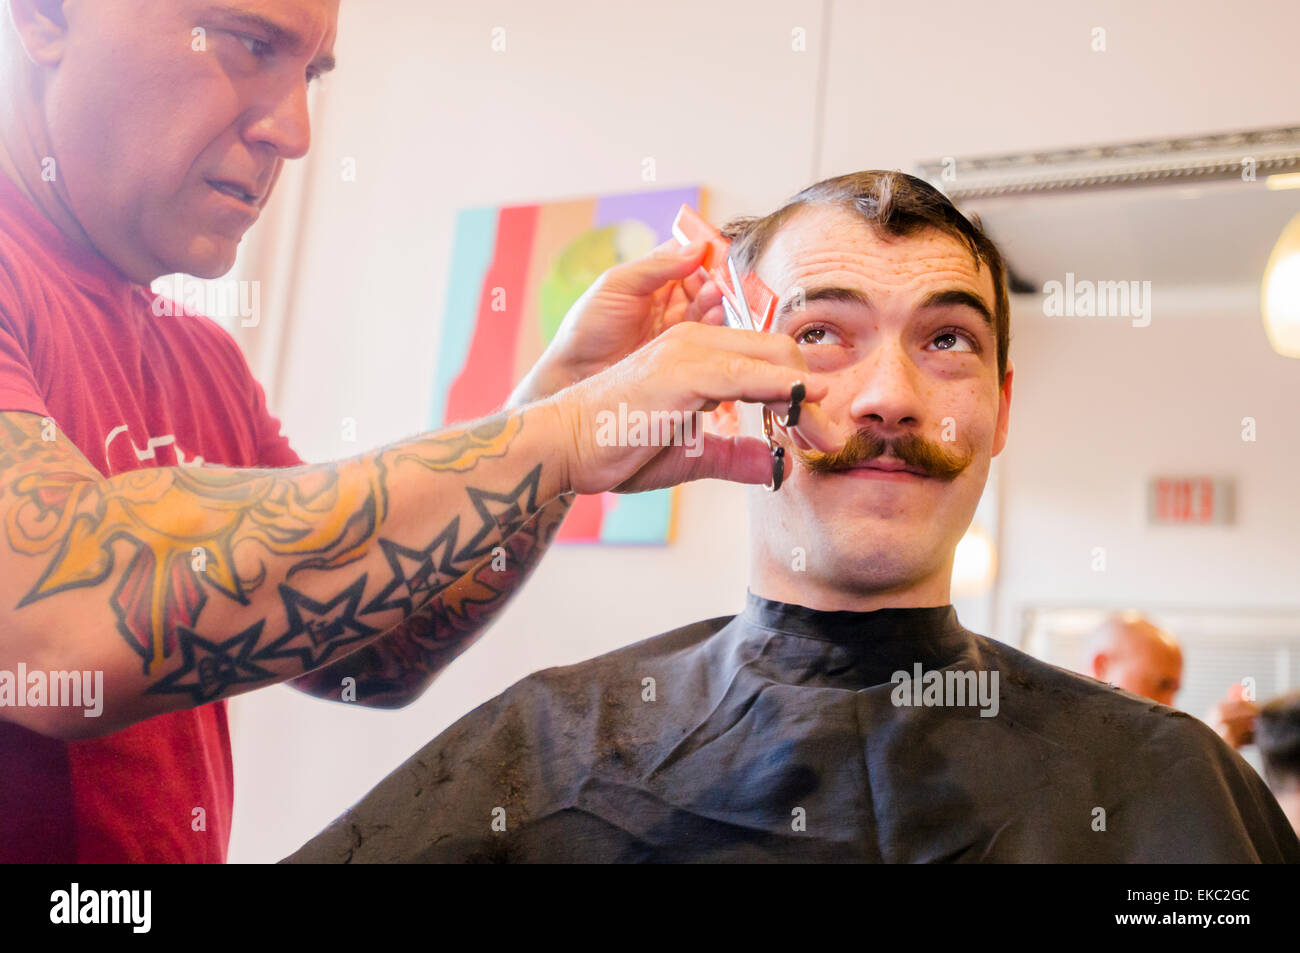 Young man with handlebar moustache having his hair cut Stock Photo